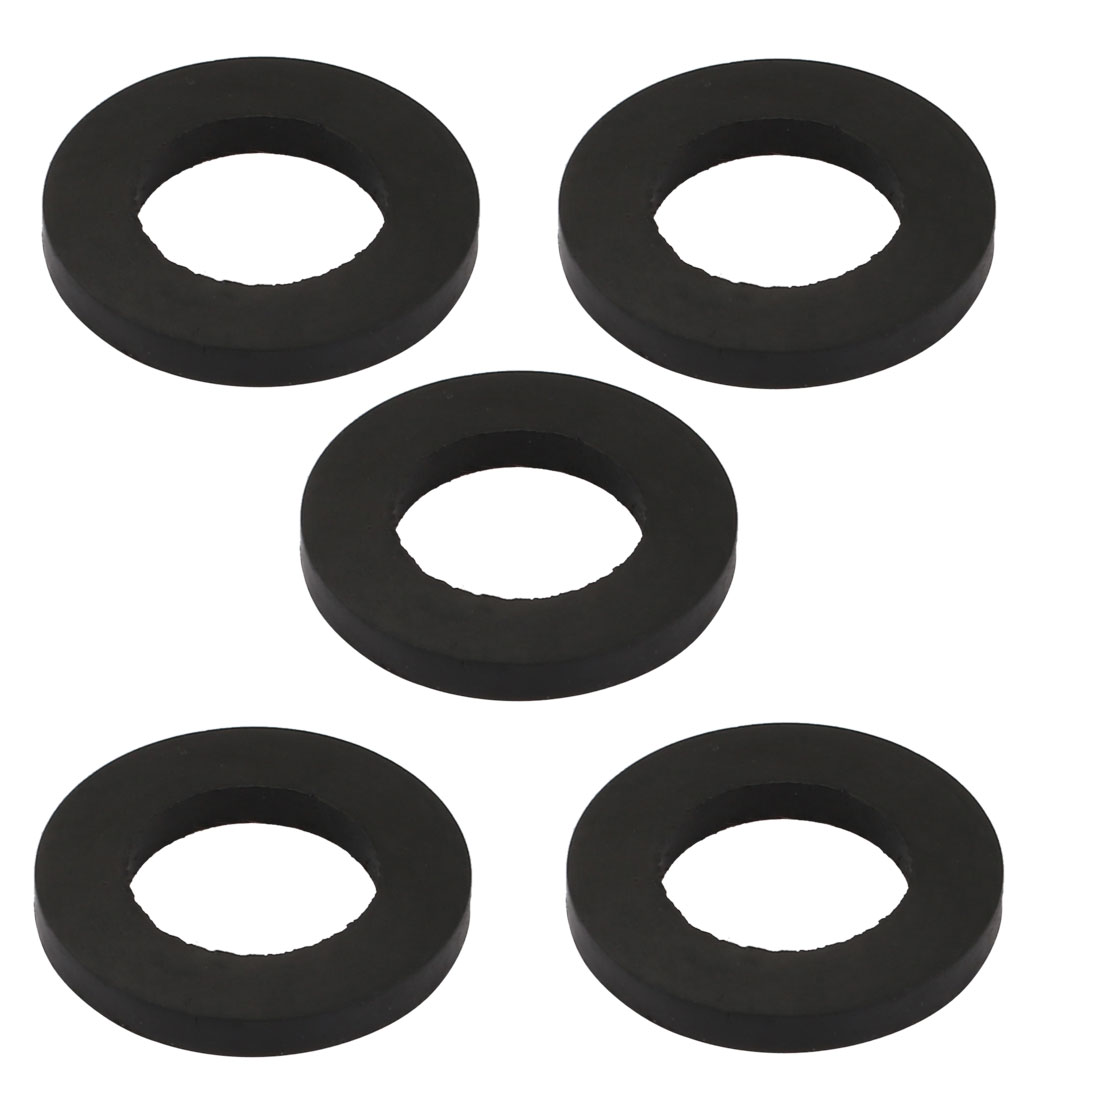 5pcs Black Color Rubber Round Flat Washer Assortment Size 14x24x3mm Flat Washer